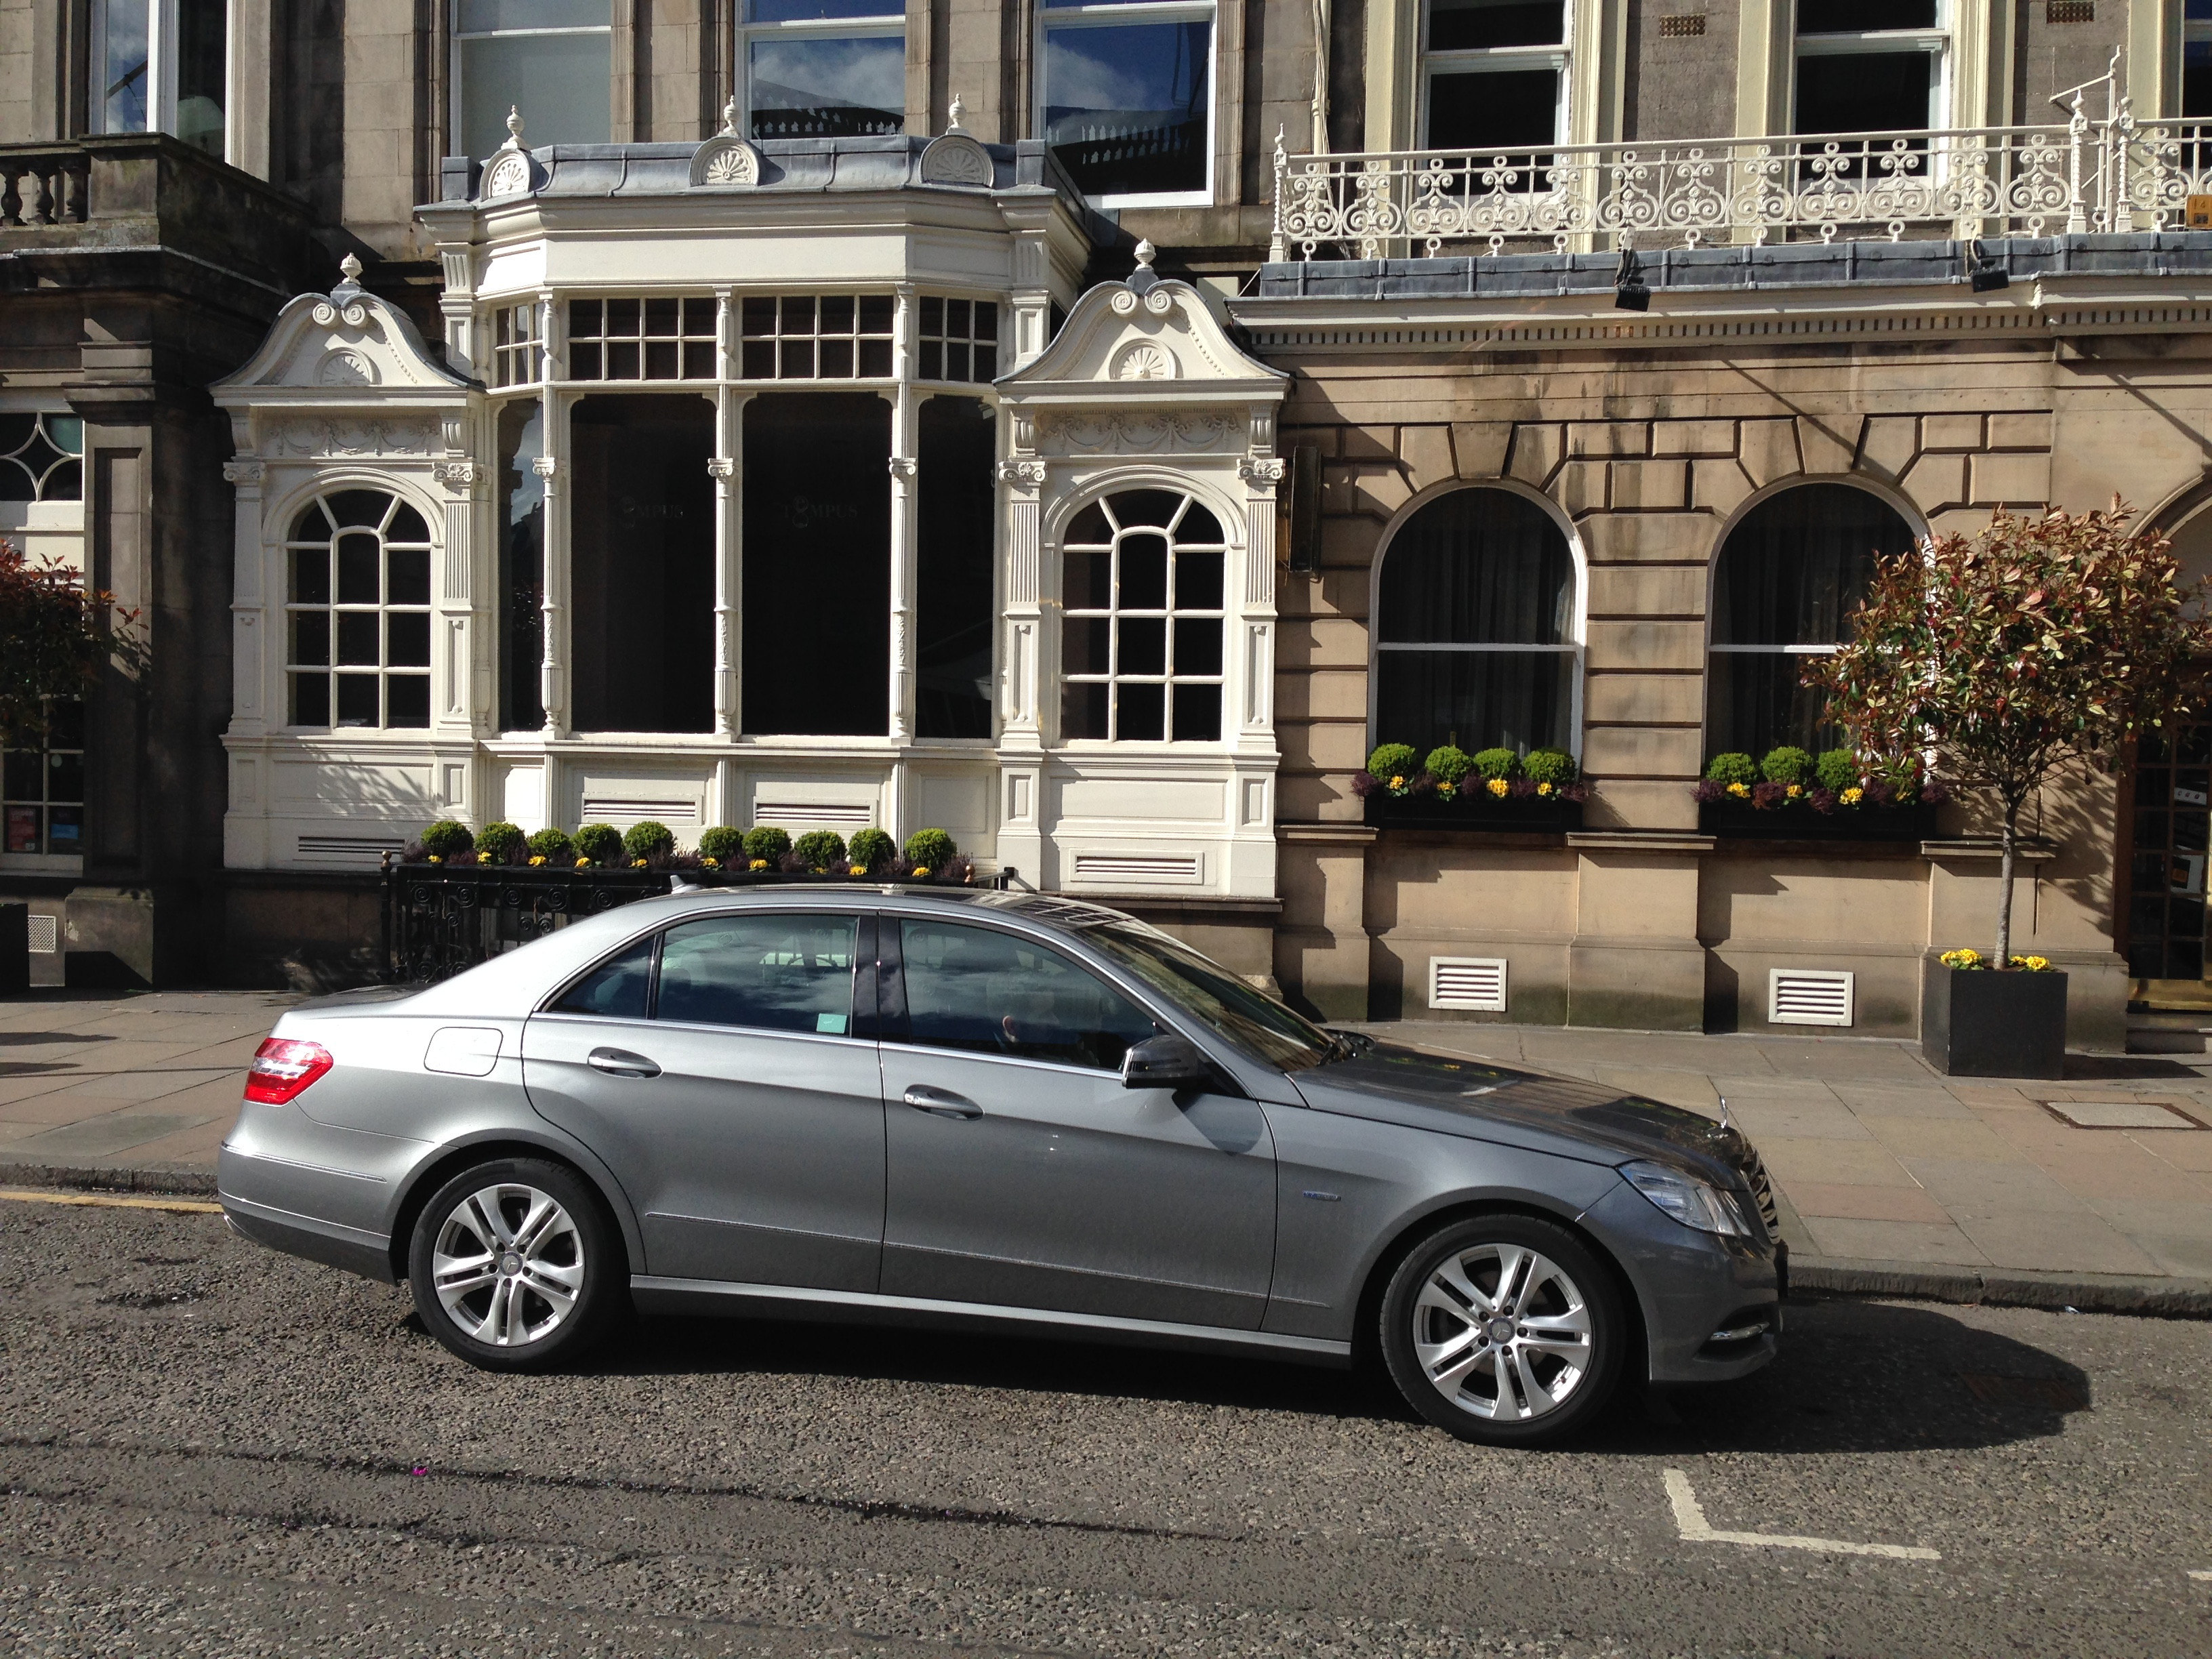 Edinburgh Scenic Day Tour by Chauffeur Driven Mercedes